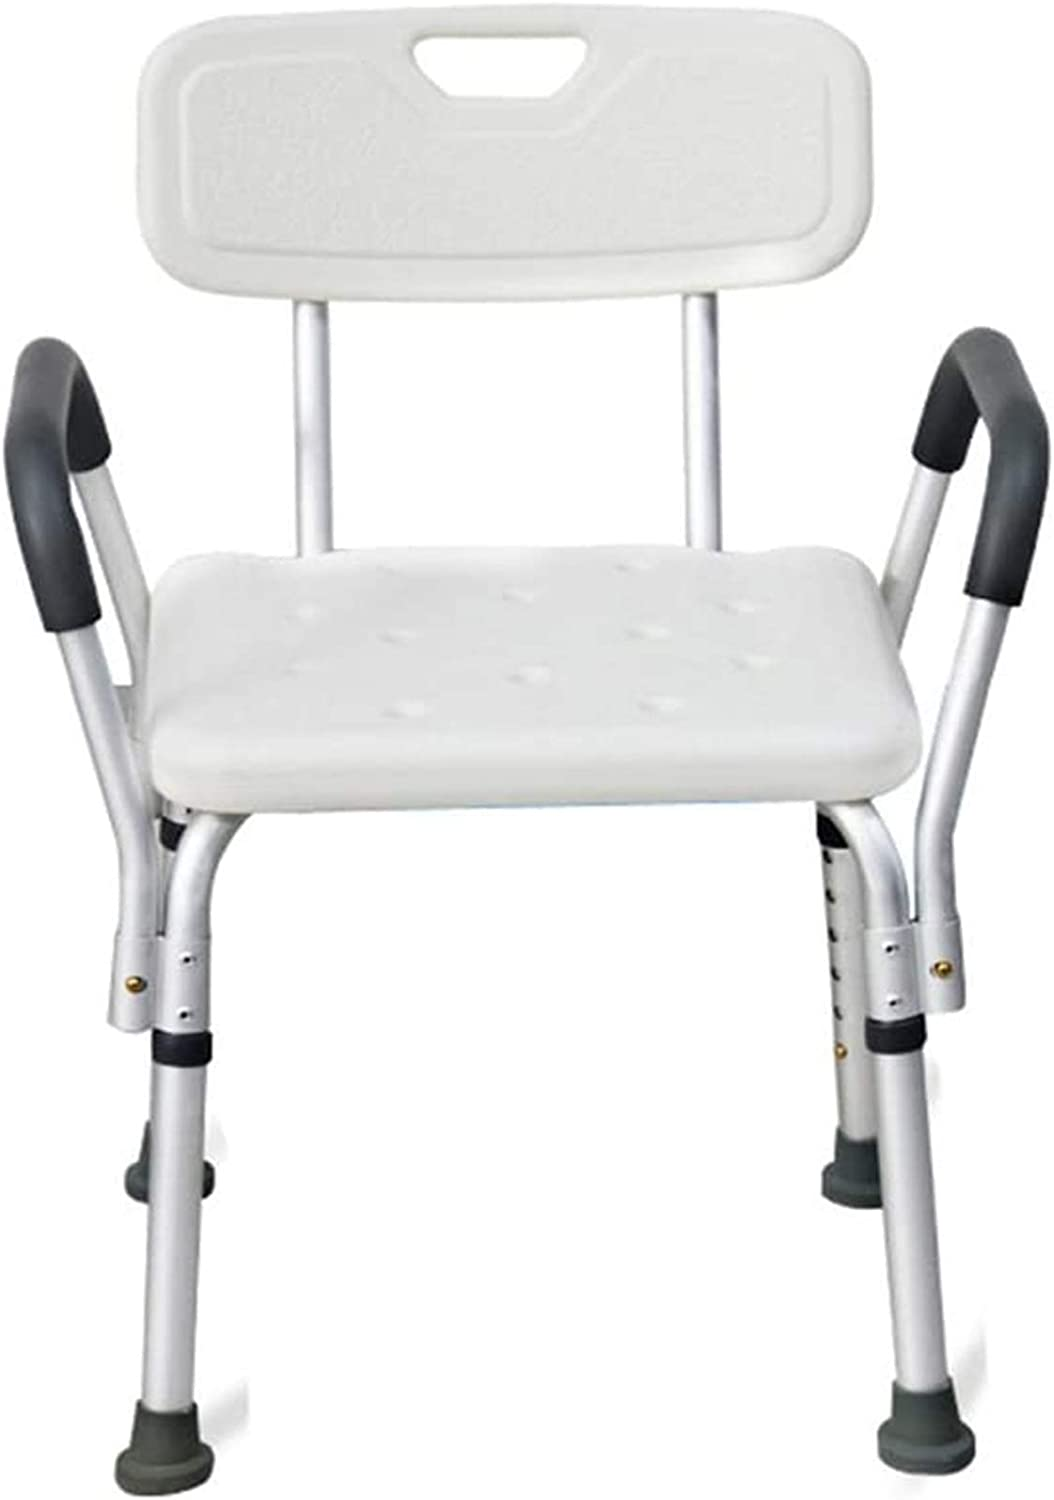 TUHFG Shower Stool Bath Height Year-end annual account Seats Indianapolis Mall Adjustable Bat